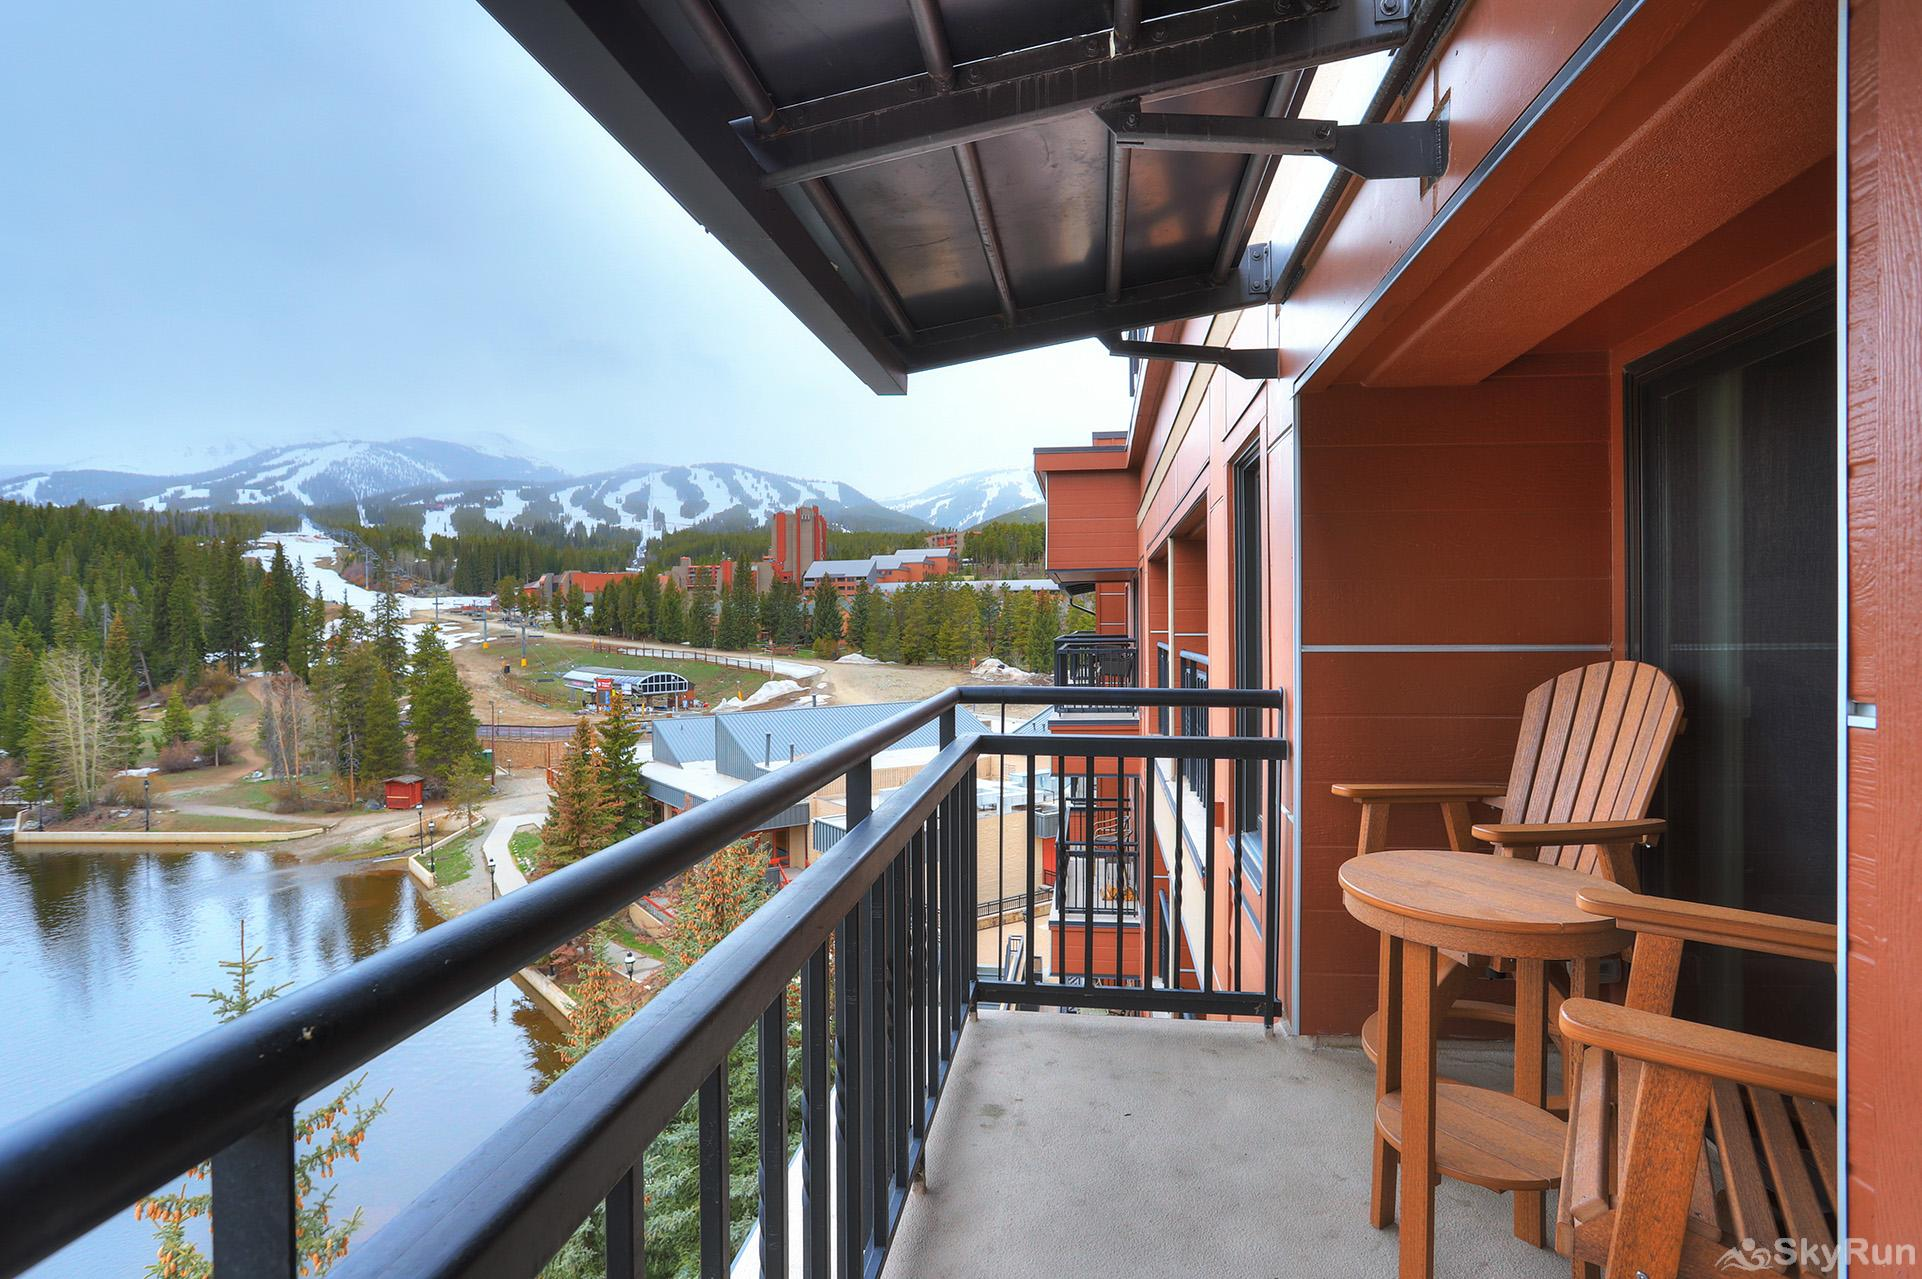 Village at Breck Antero 1503 Enjoy resort views overlooking the Maggie Pond